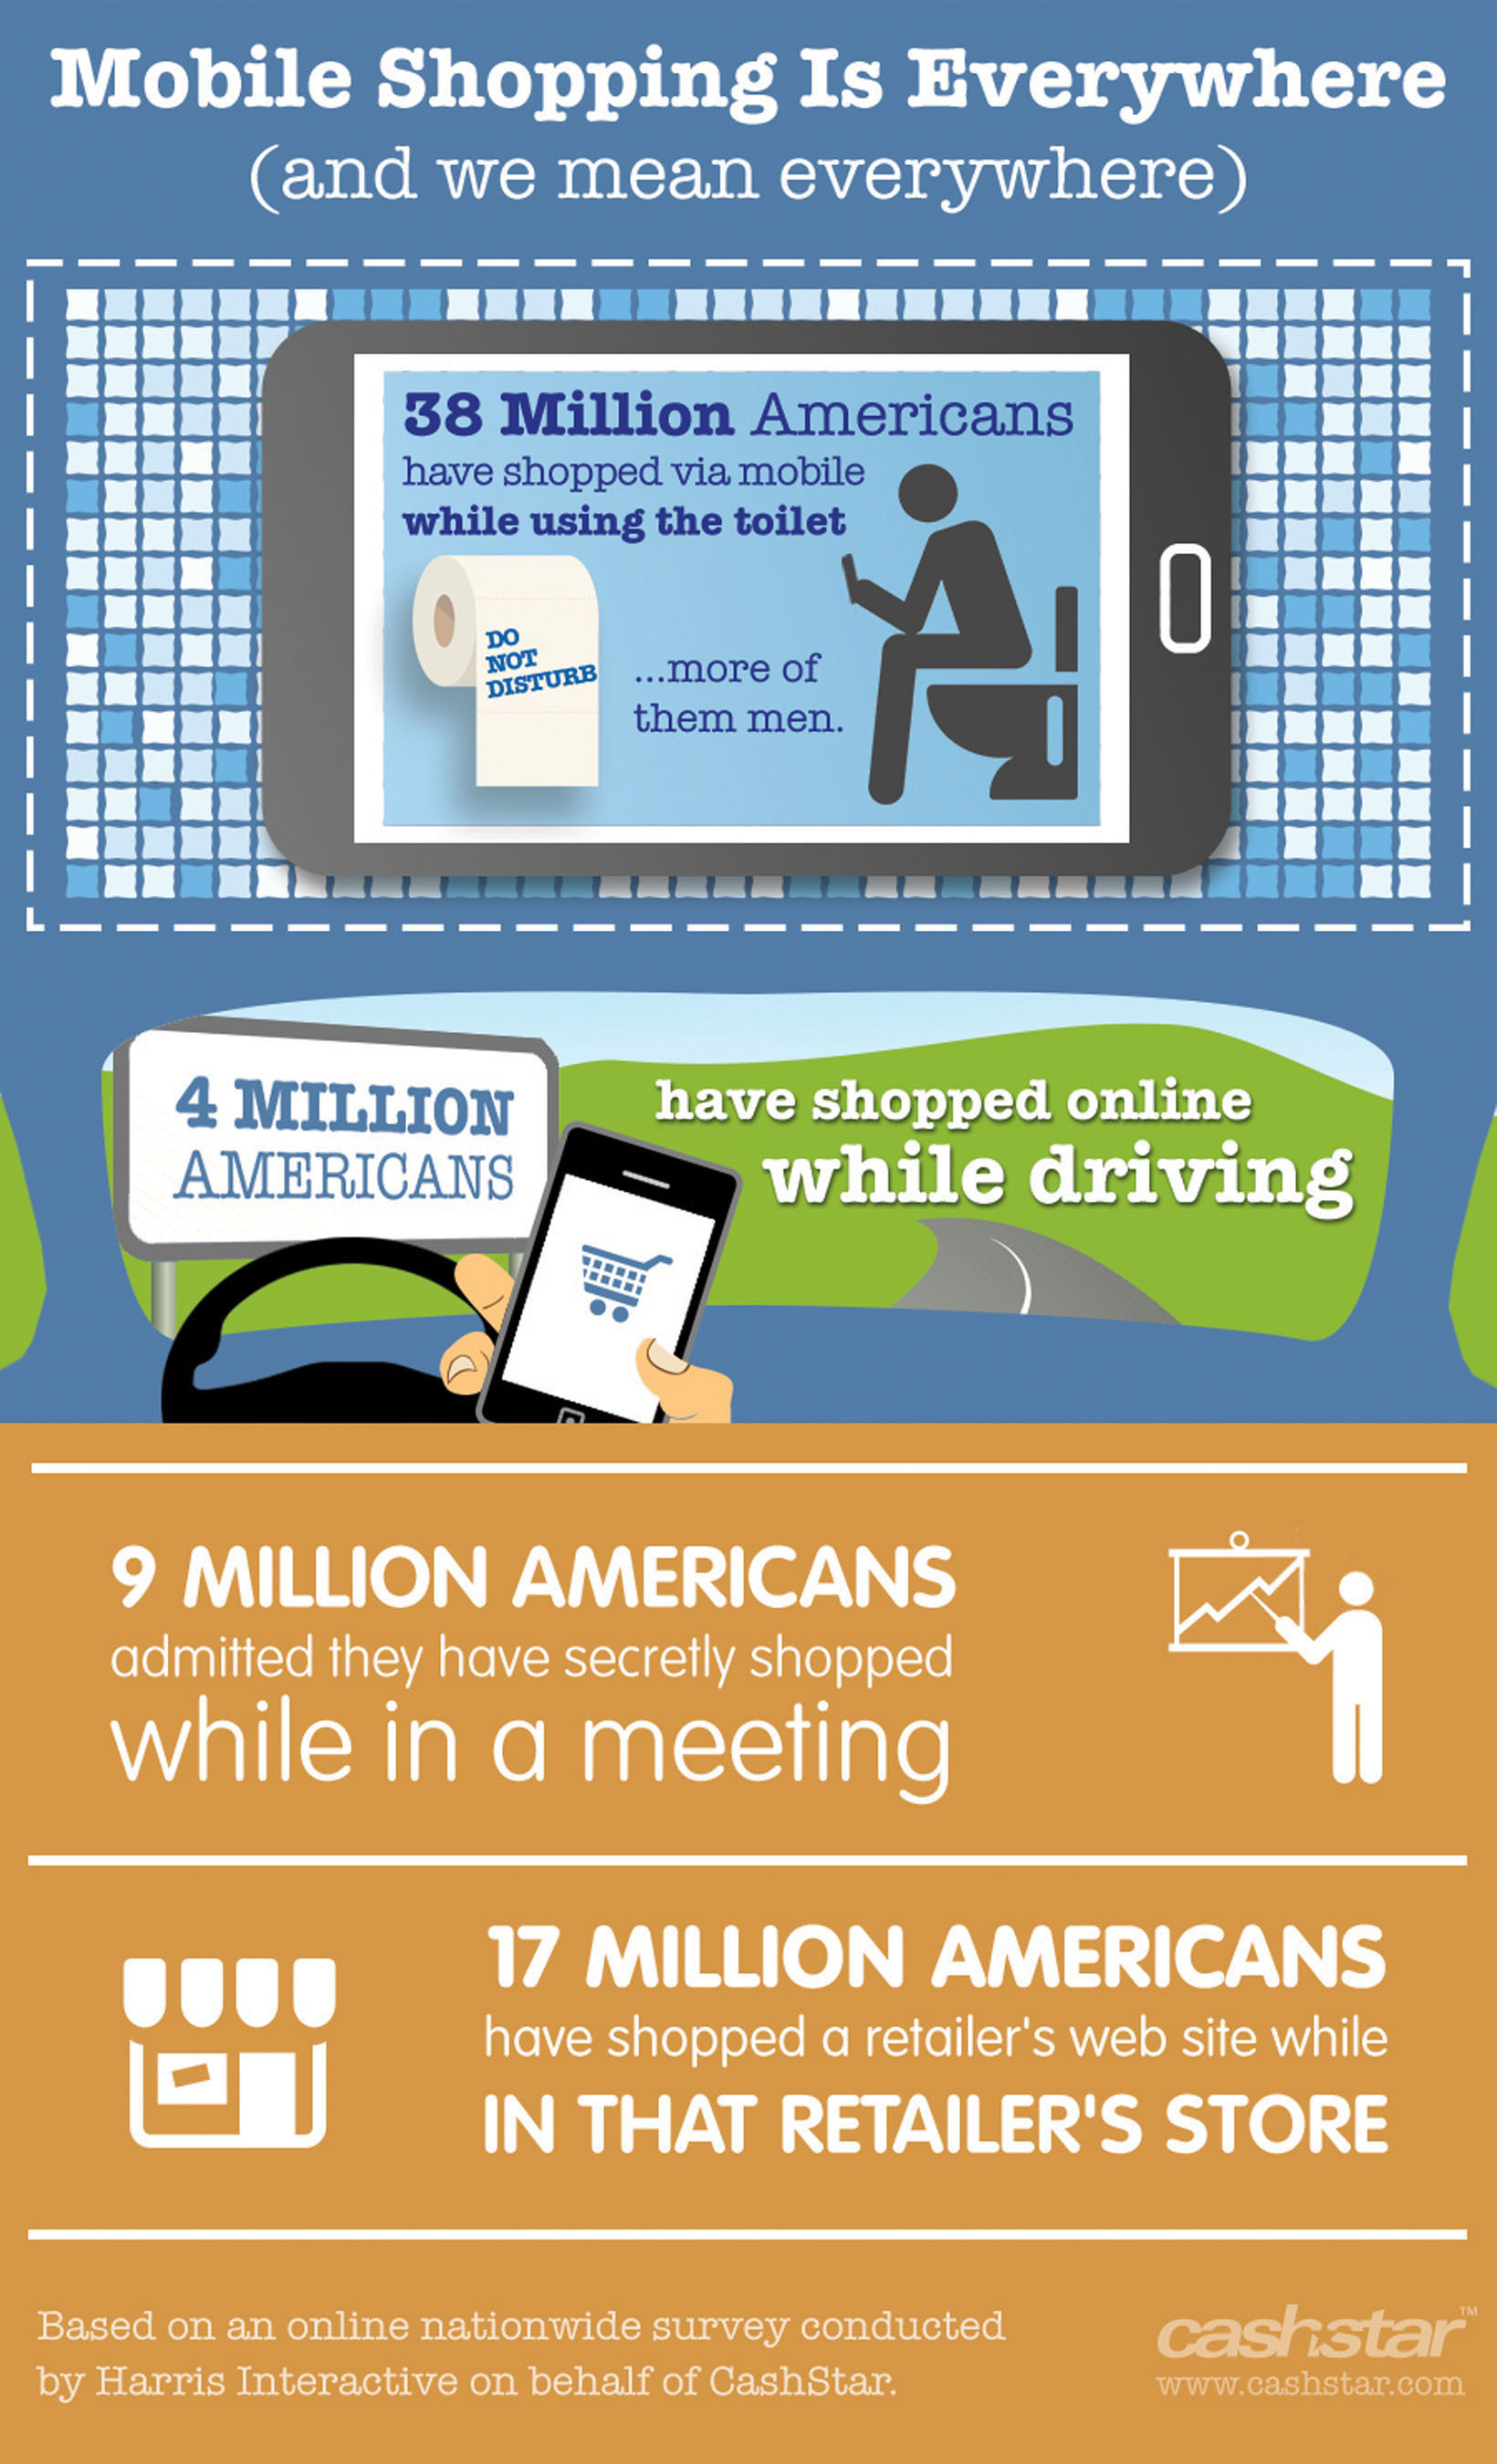 More than 38 Million* Online Americans Shopped While on the Toilet